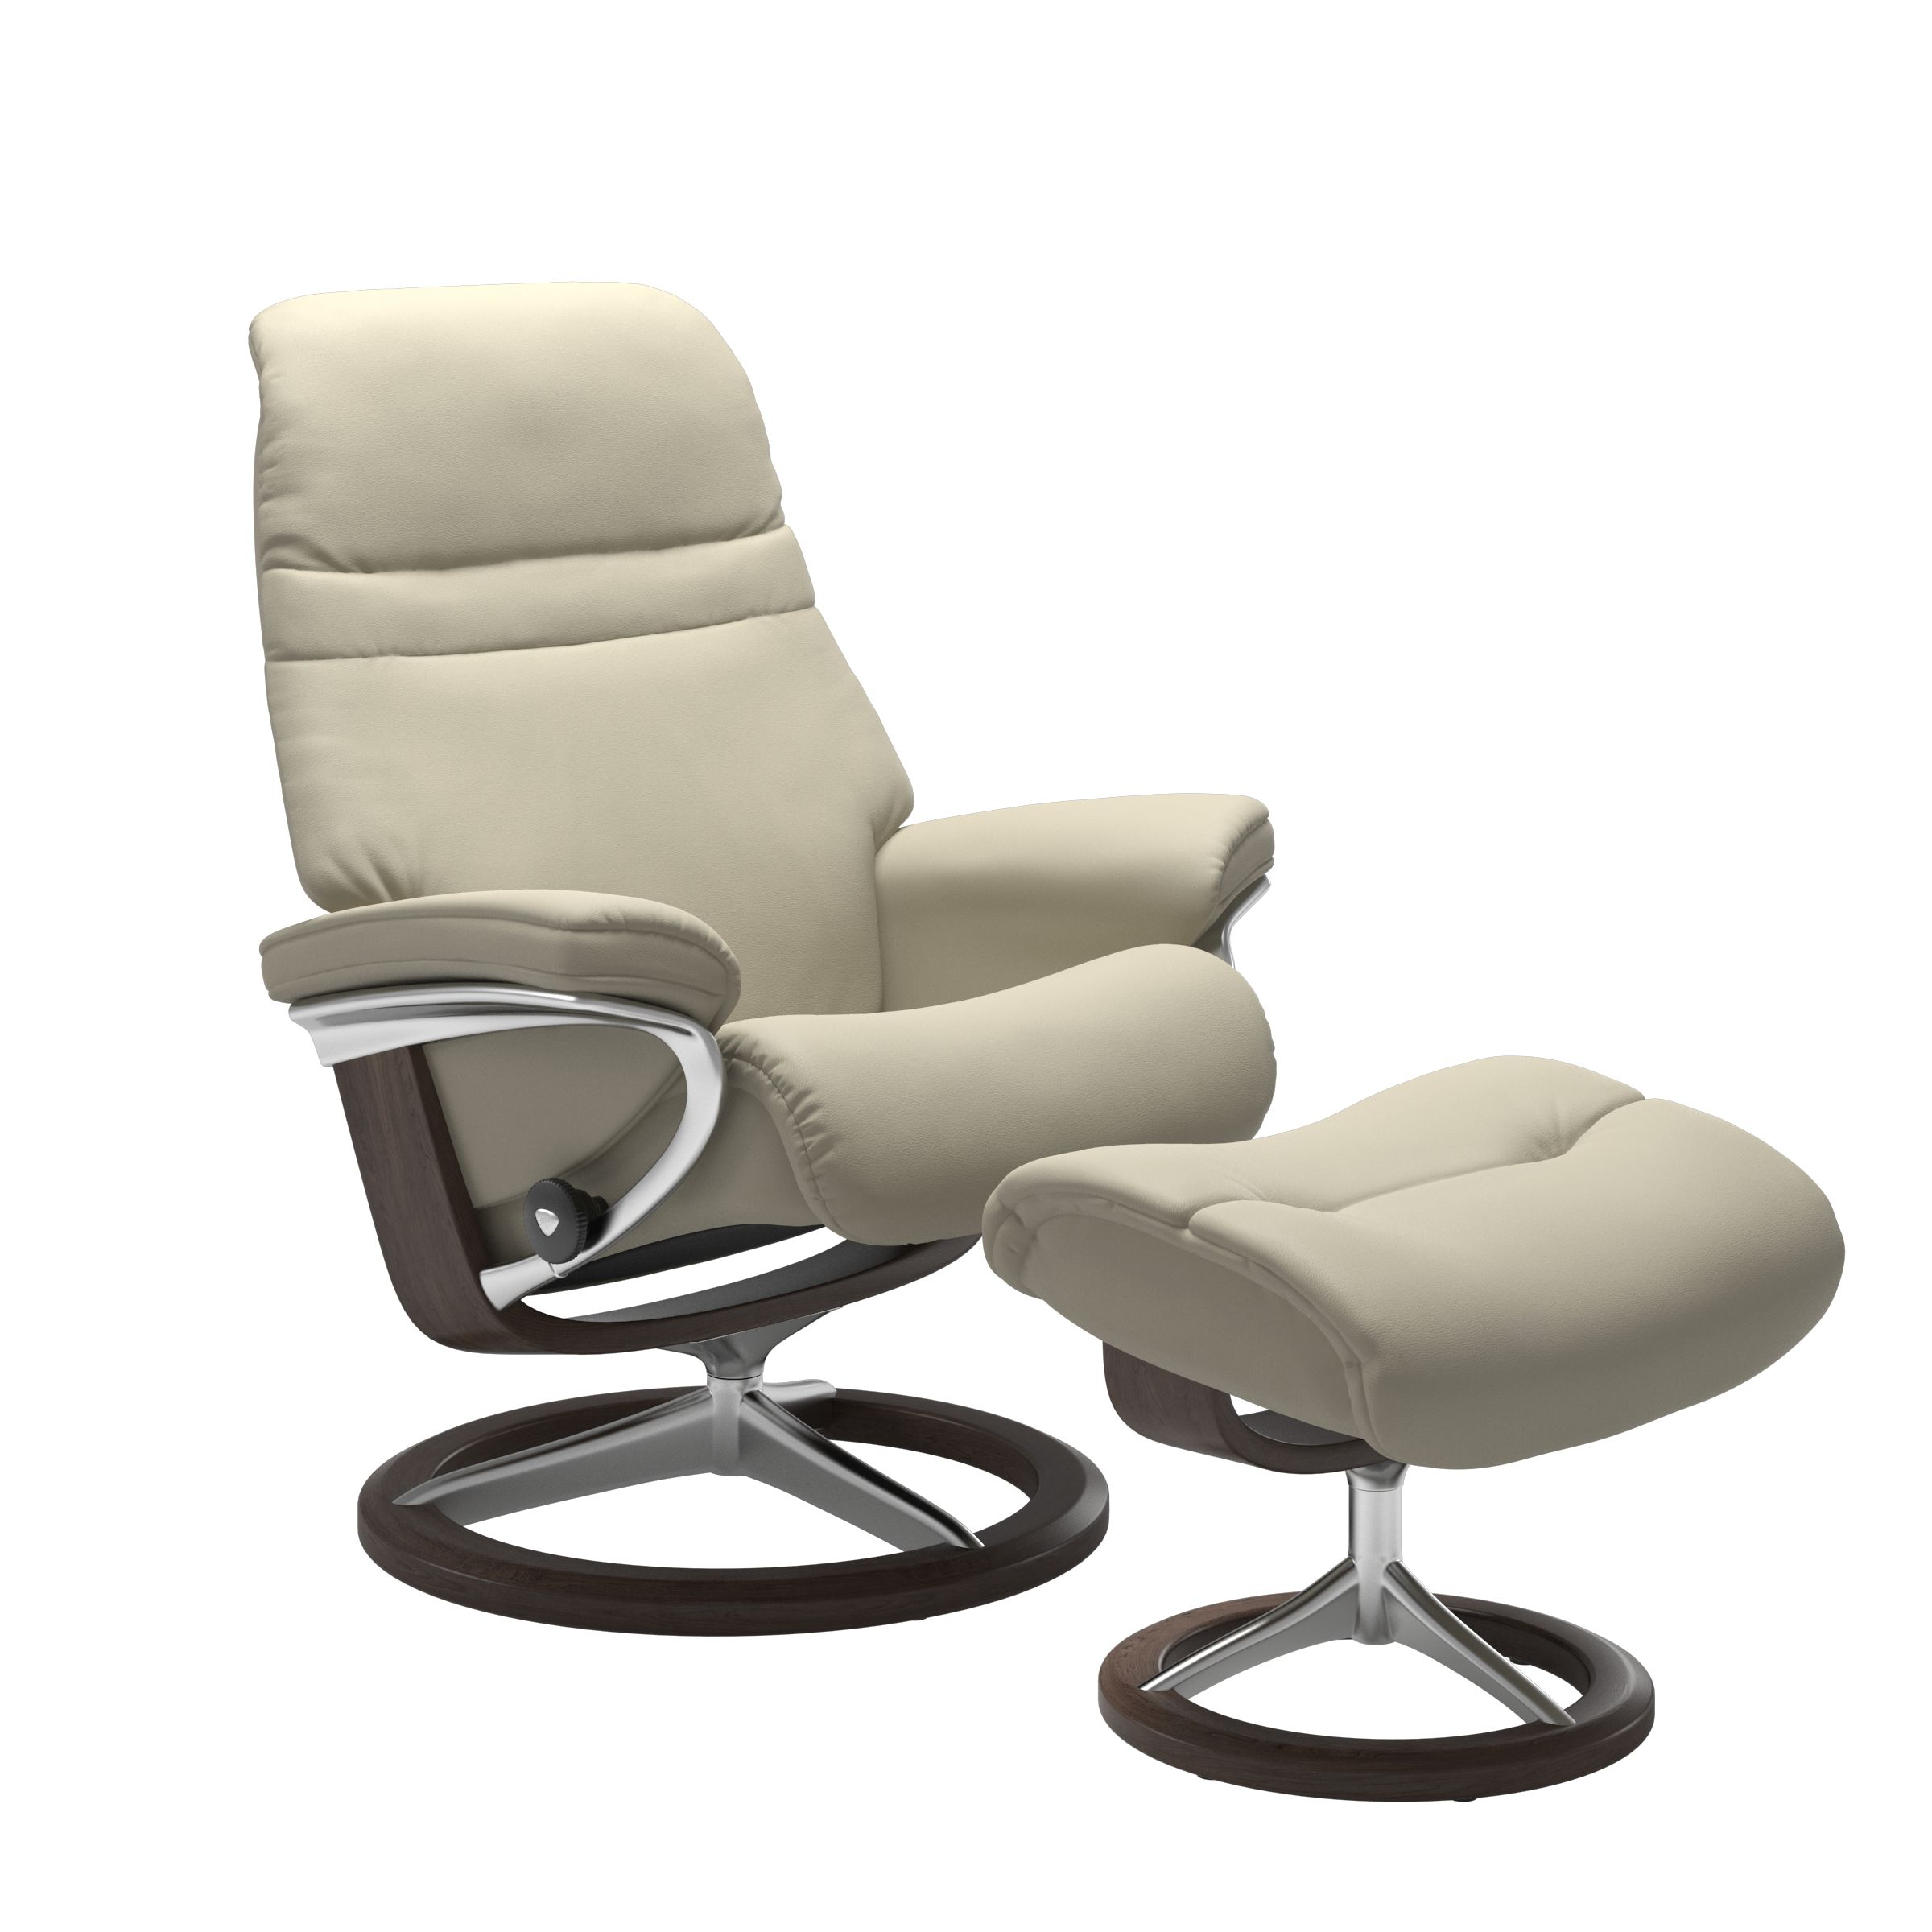 Stressless Sofa Preise Stressless Sunrise Recliners